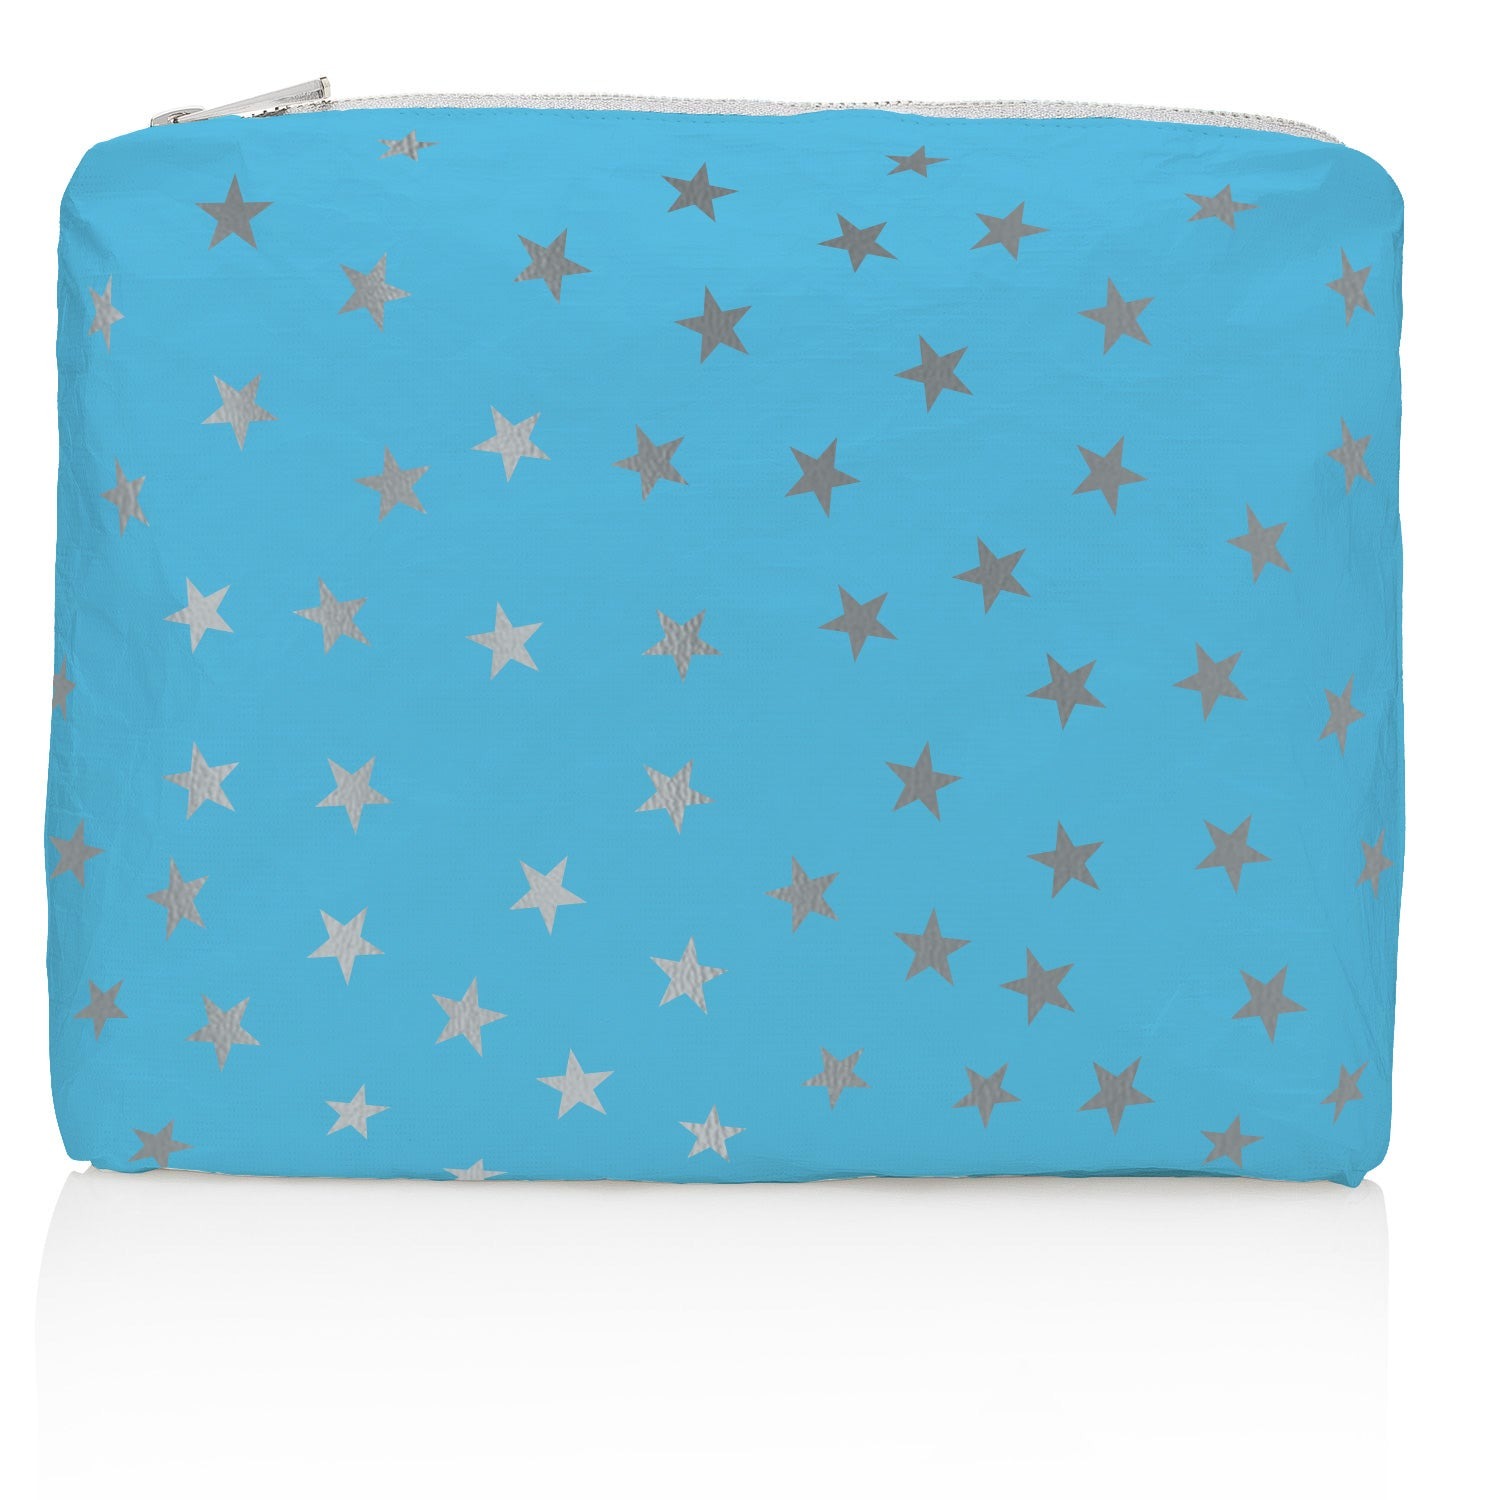 Makeup Pouch - Beach Bag - Travel Pack - Medium Pack - Sky Blue with Myriad Metallic Silver Stars